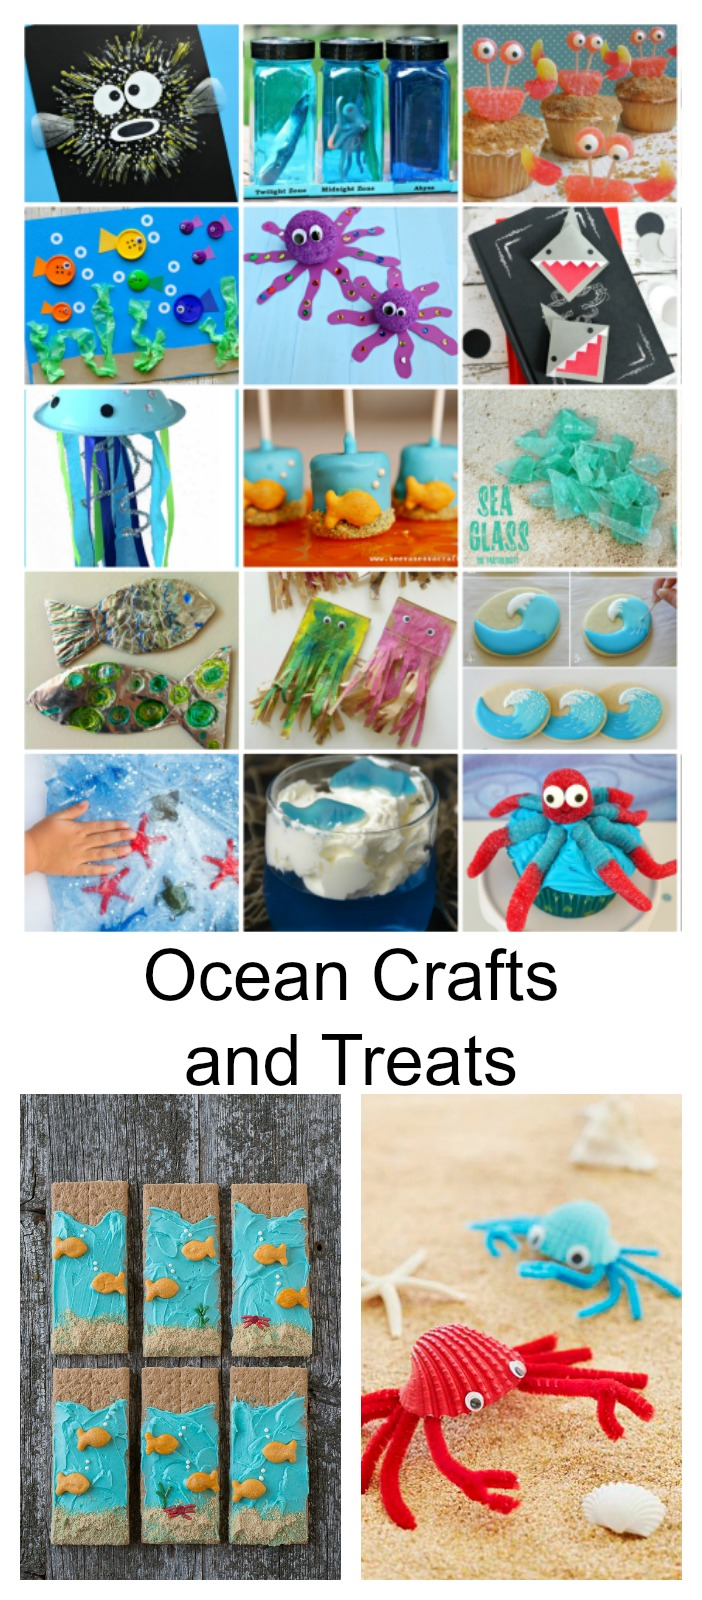 Ocean-Crafts-Treats-Ideas-Pin